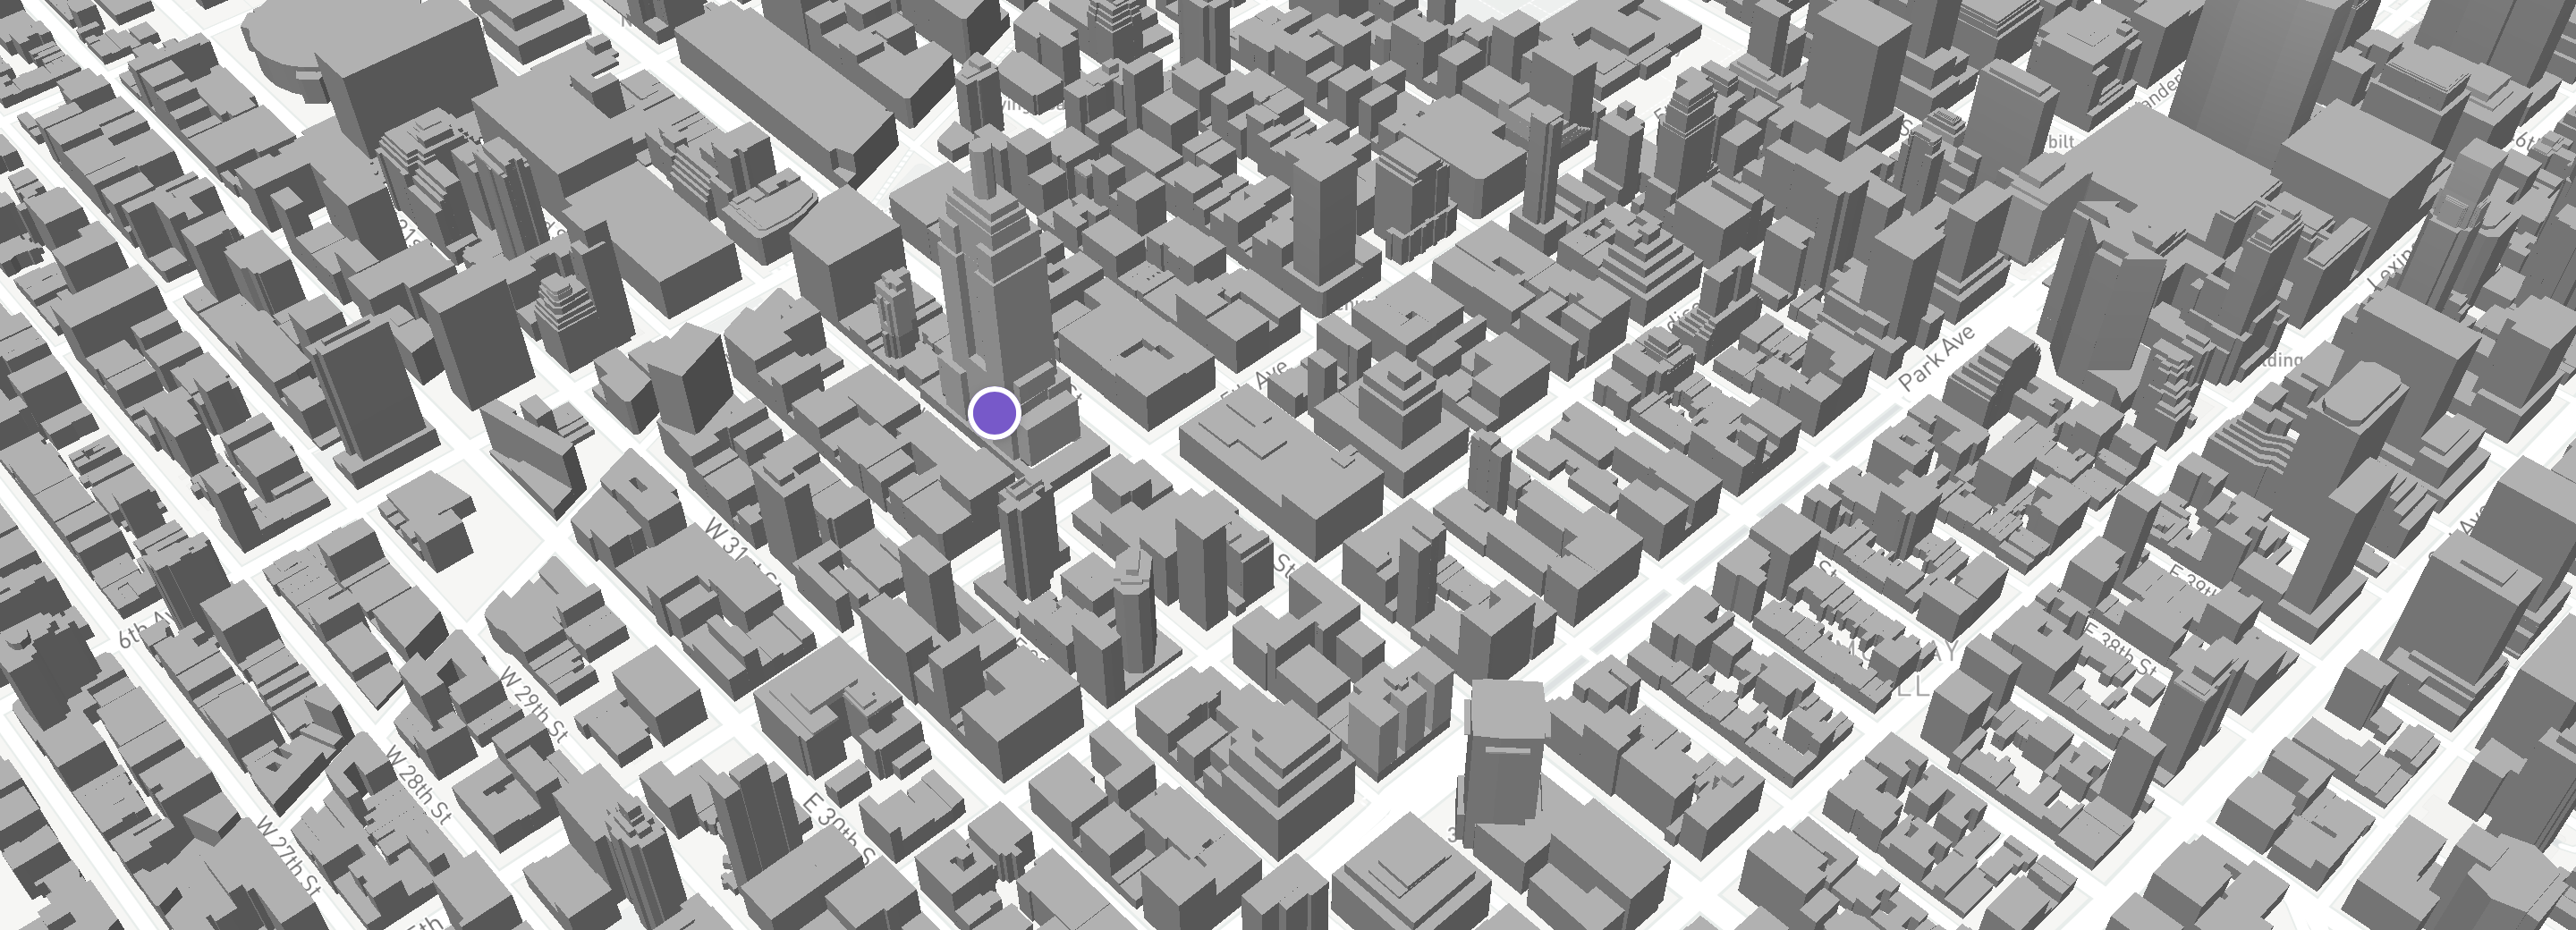 Prototyping maps with Framer and Mapbox - Framer